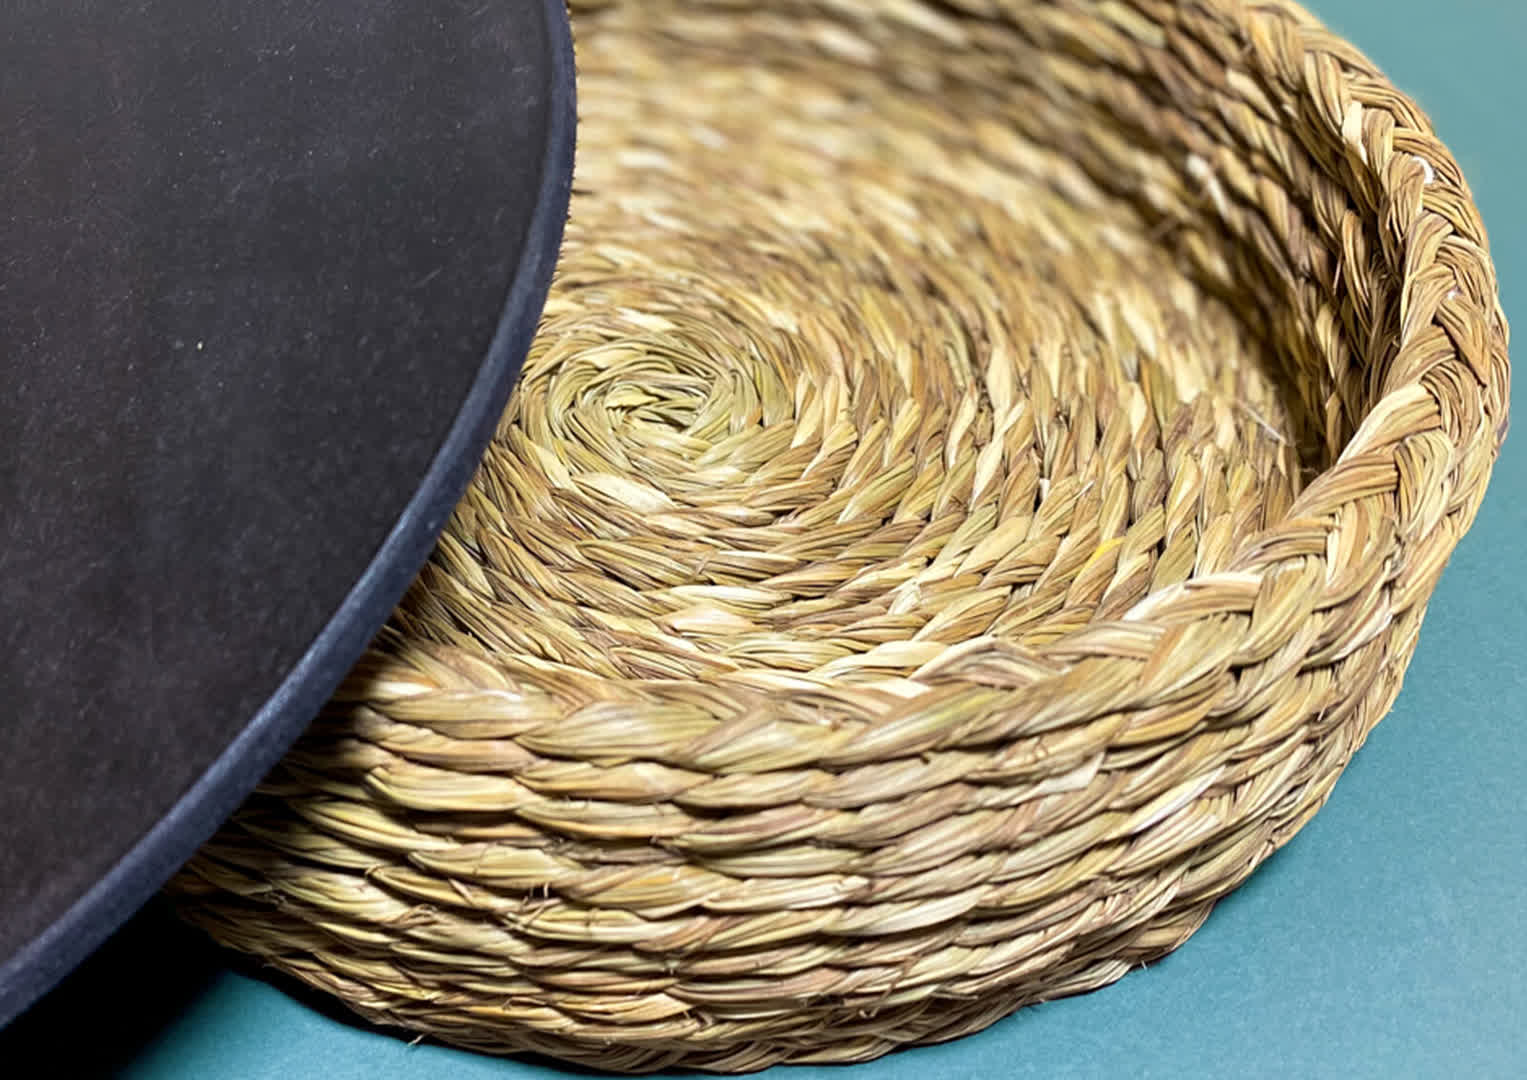 Braided grass which is turned into products like baskets, boxes and more. | Peepul Tree